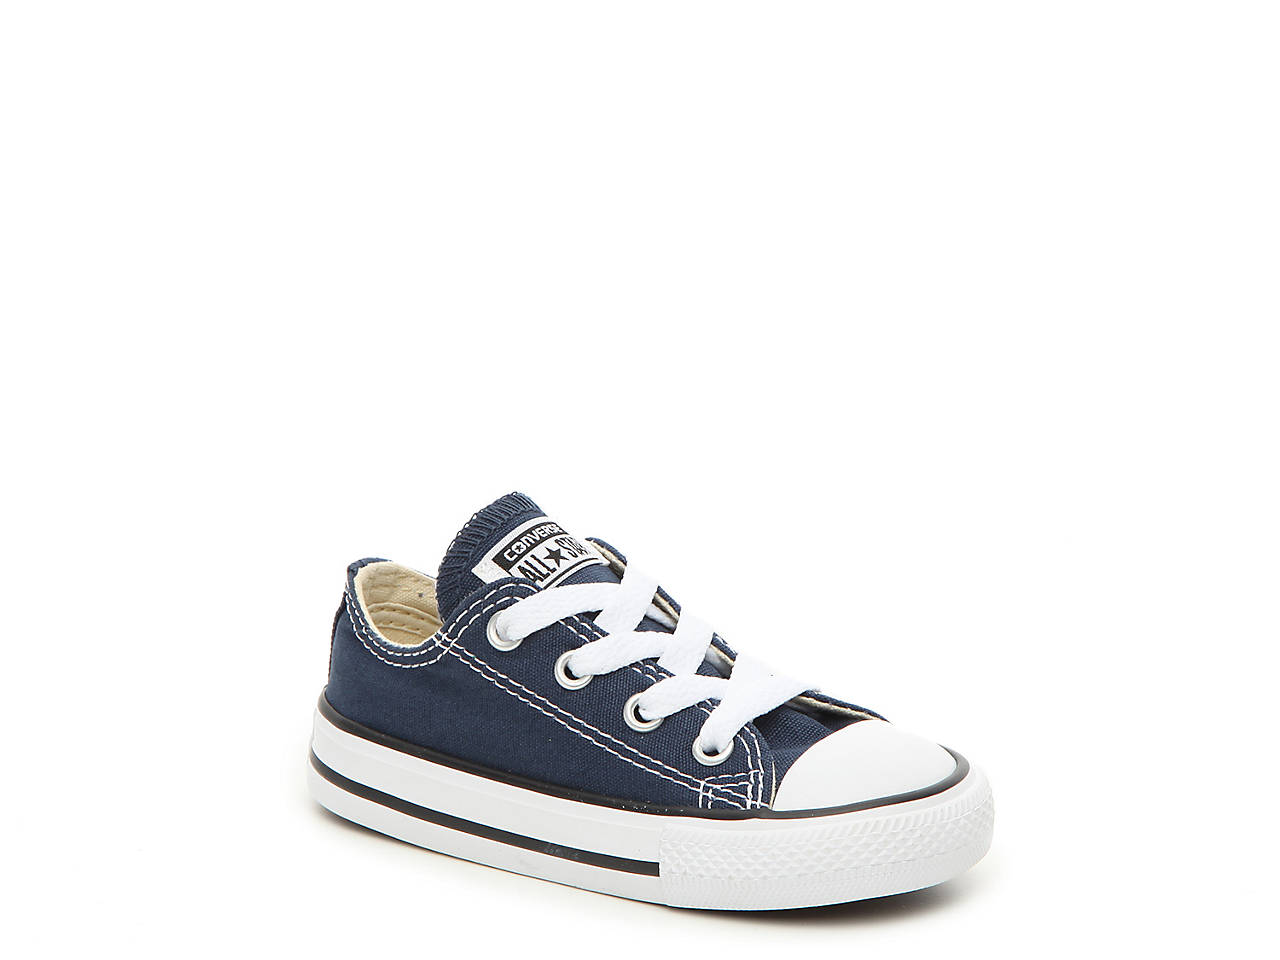 749044e94fe Converse Chuck Taylor All Star Infant   Toddler Sneaker Kids Shoes